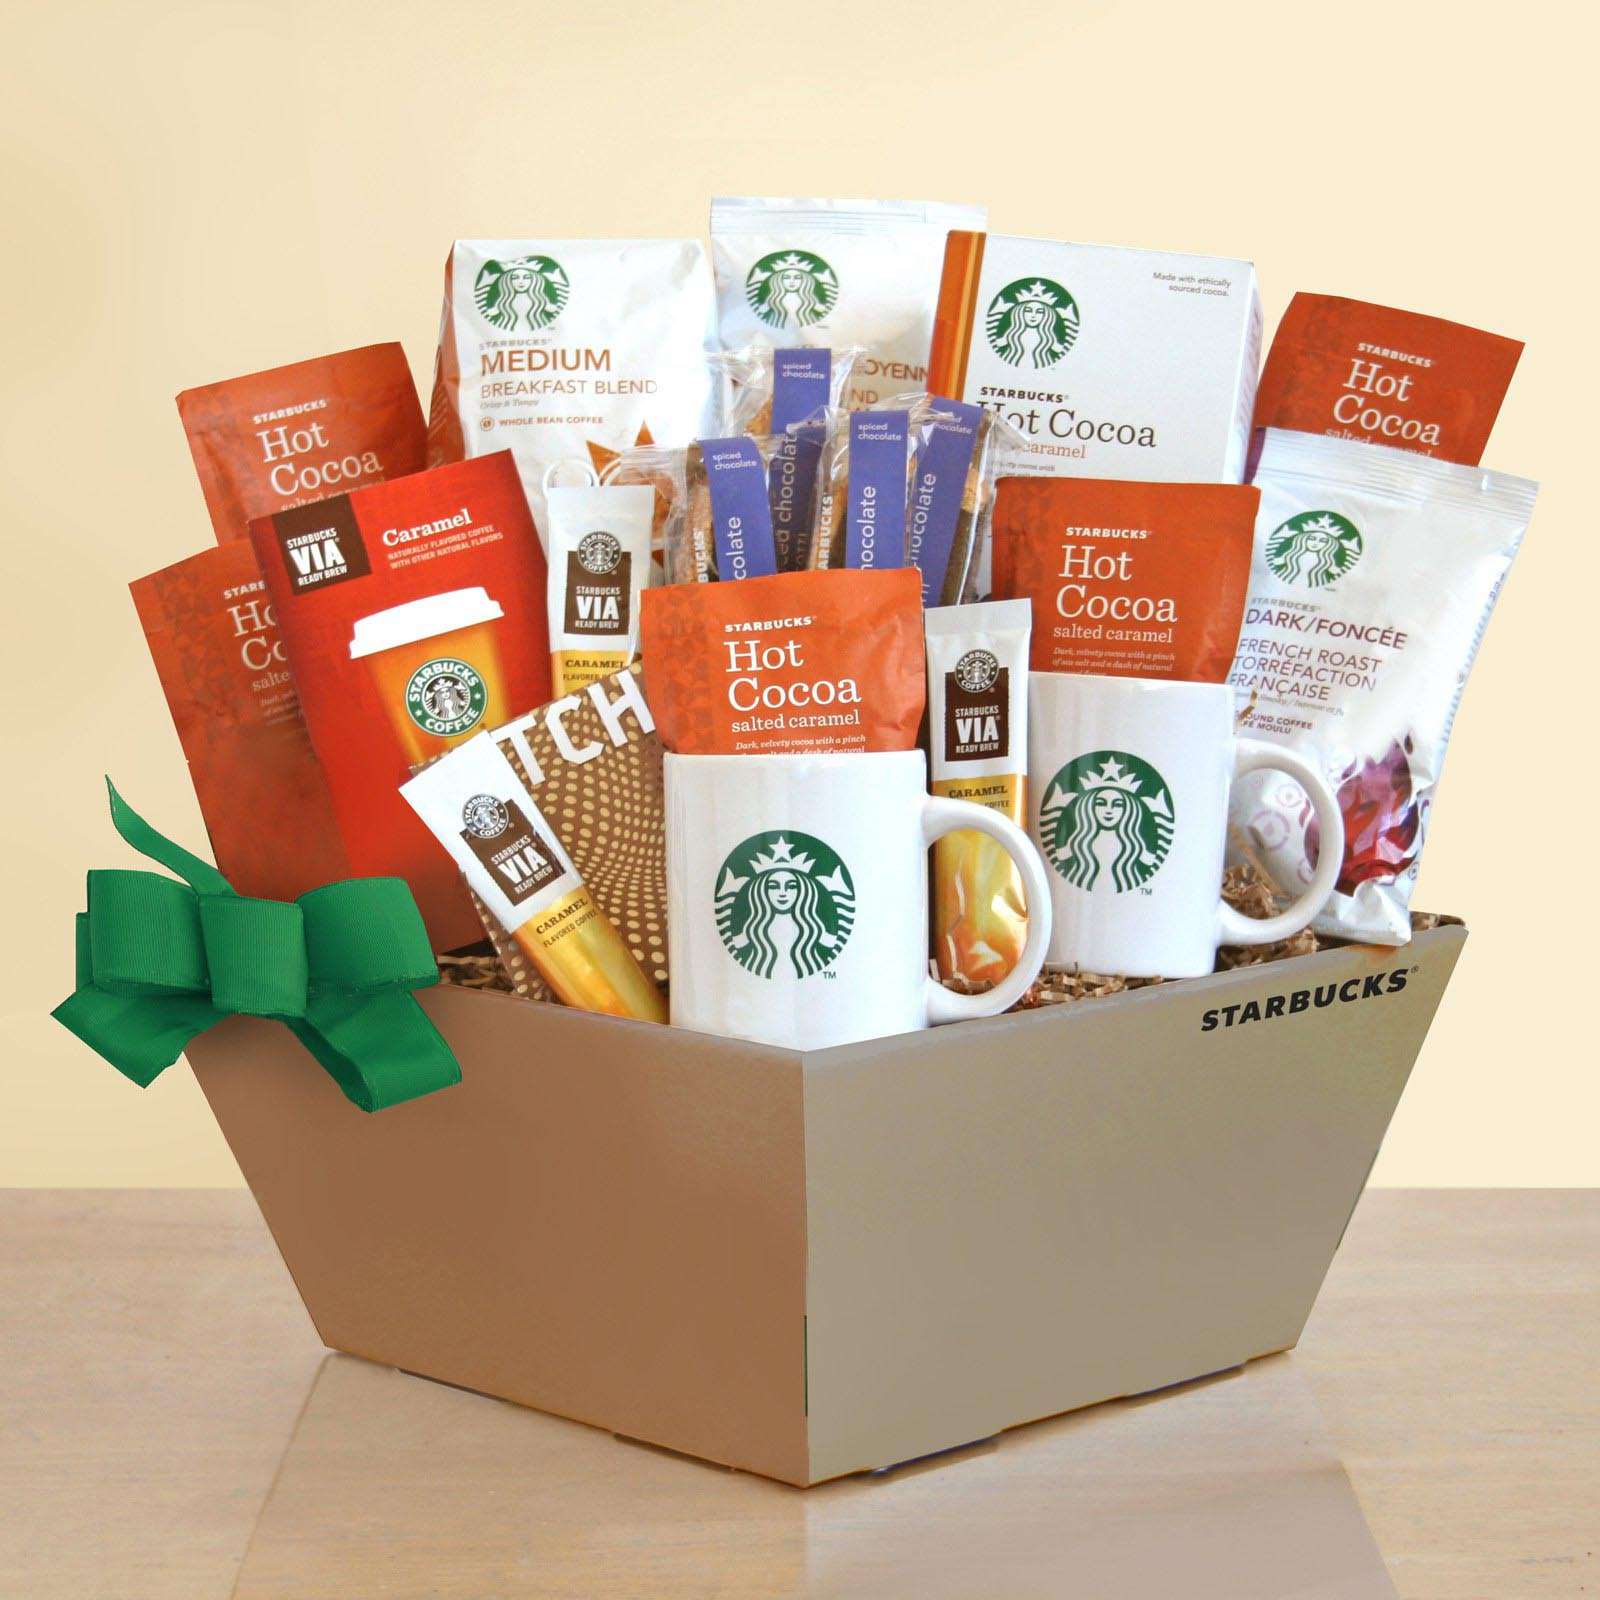 Every Occasion Basket Dunmore Candy Kitchen: Tea Gift Baskets For Every Case And Any Occasion